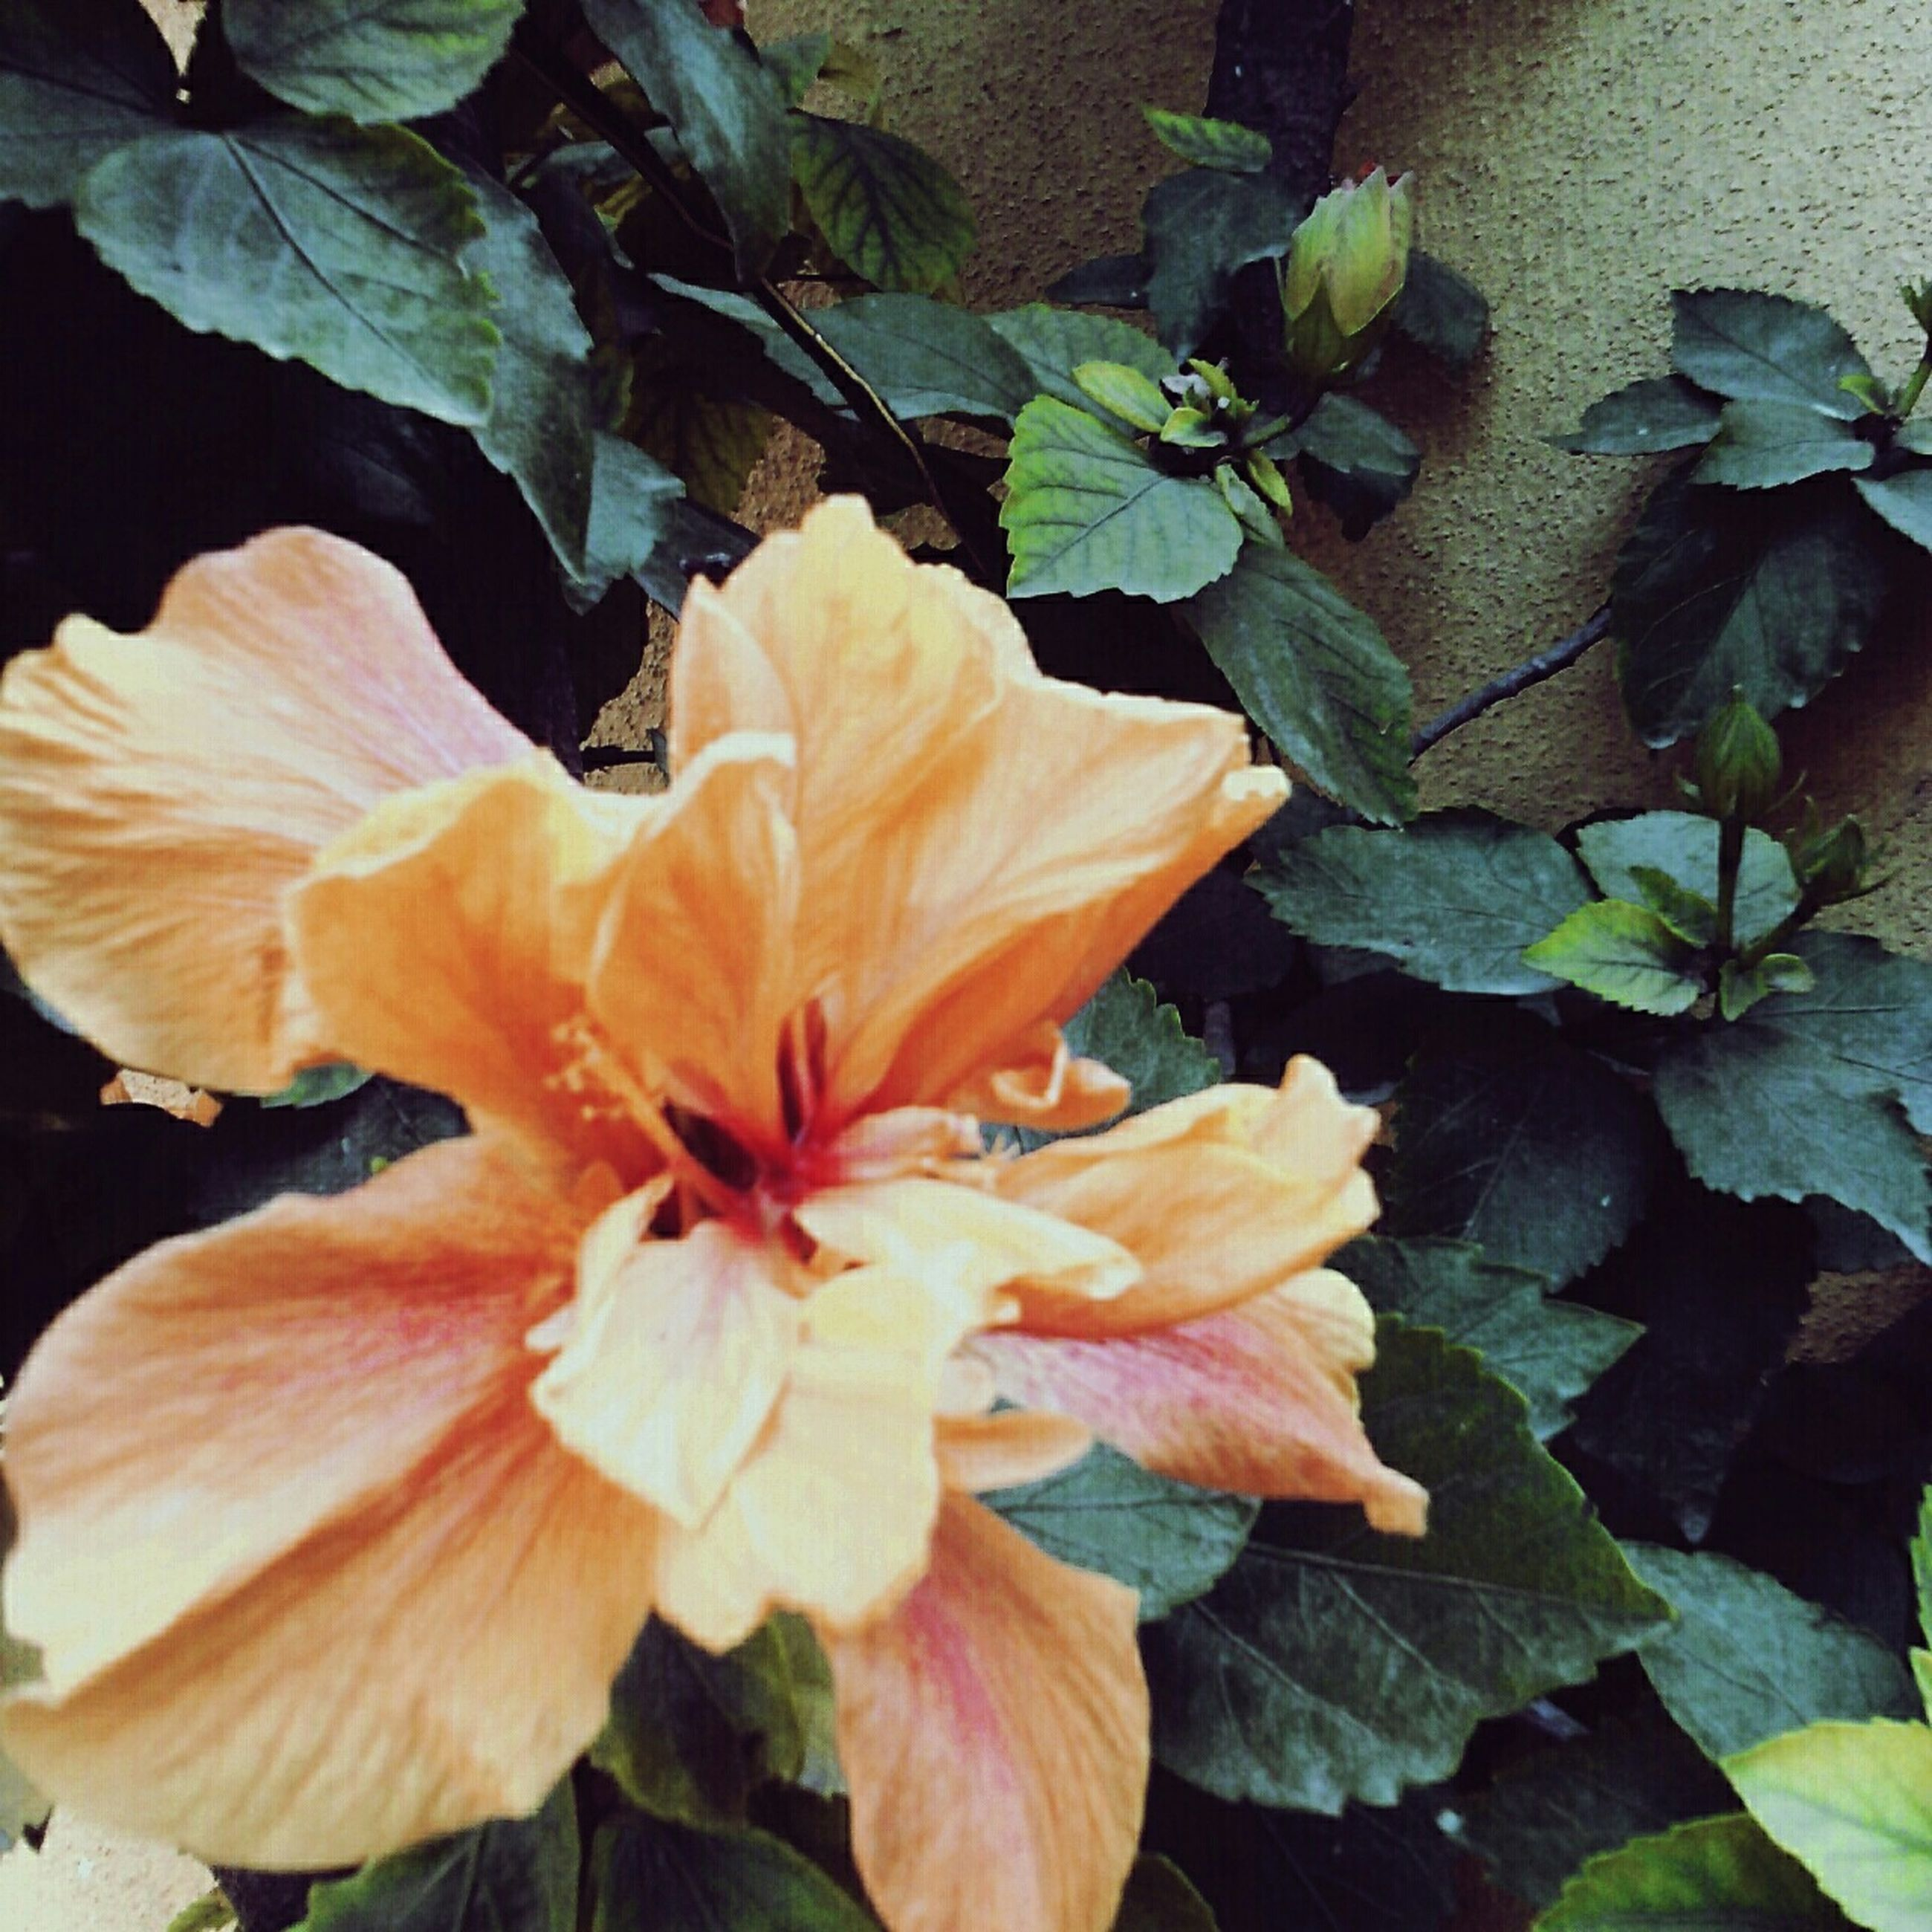 petal, flower, flower head, fragility, leaf, freshness, growth, beauty in nature, close-up, plant, nature, blooming, high angle view, single flower, stamen, in bloom, botany, no people, hibiscus, orange color